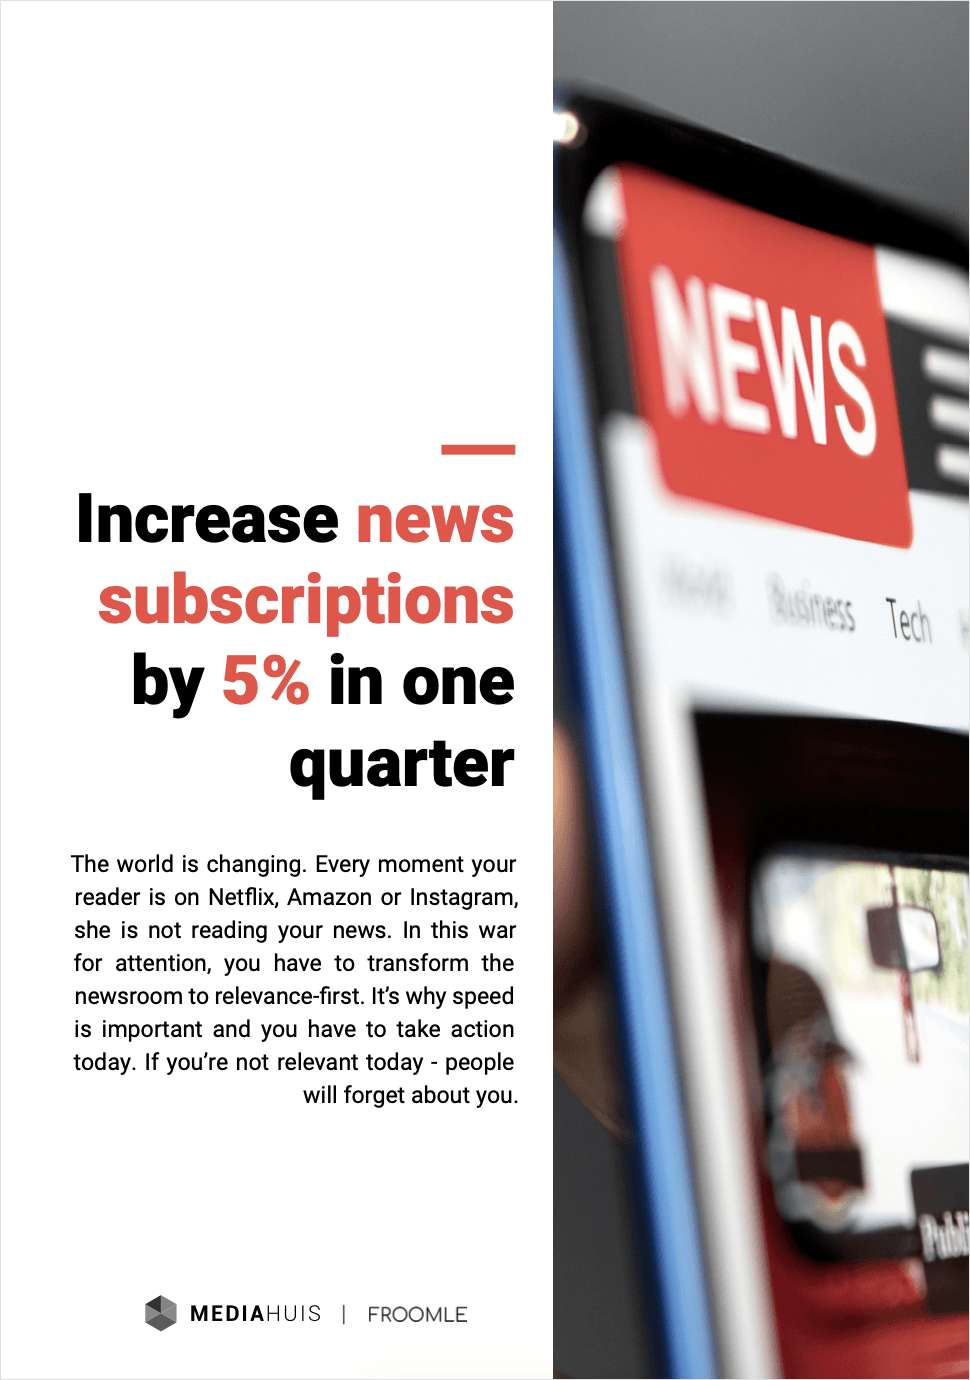 Increase News Subscriptions by 5% in One Quarter